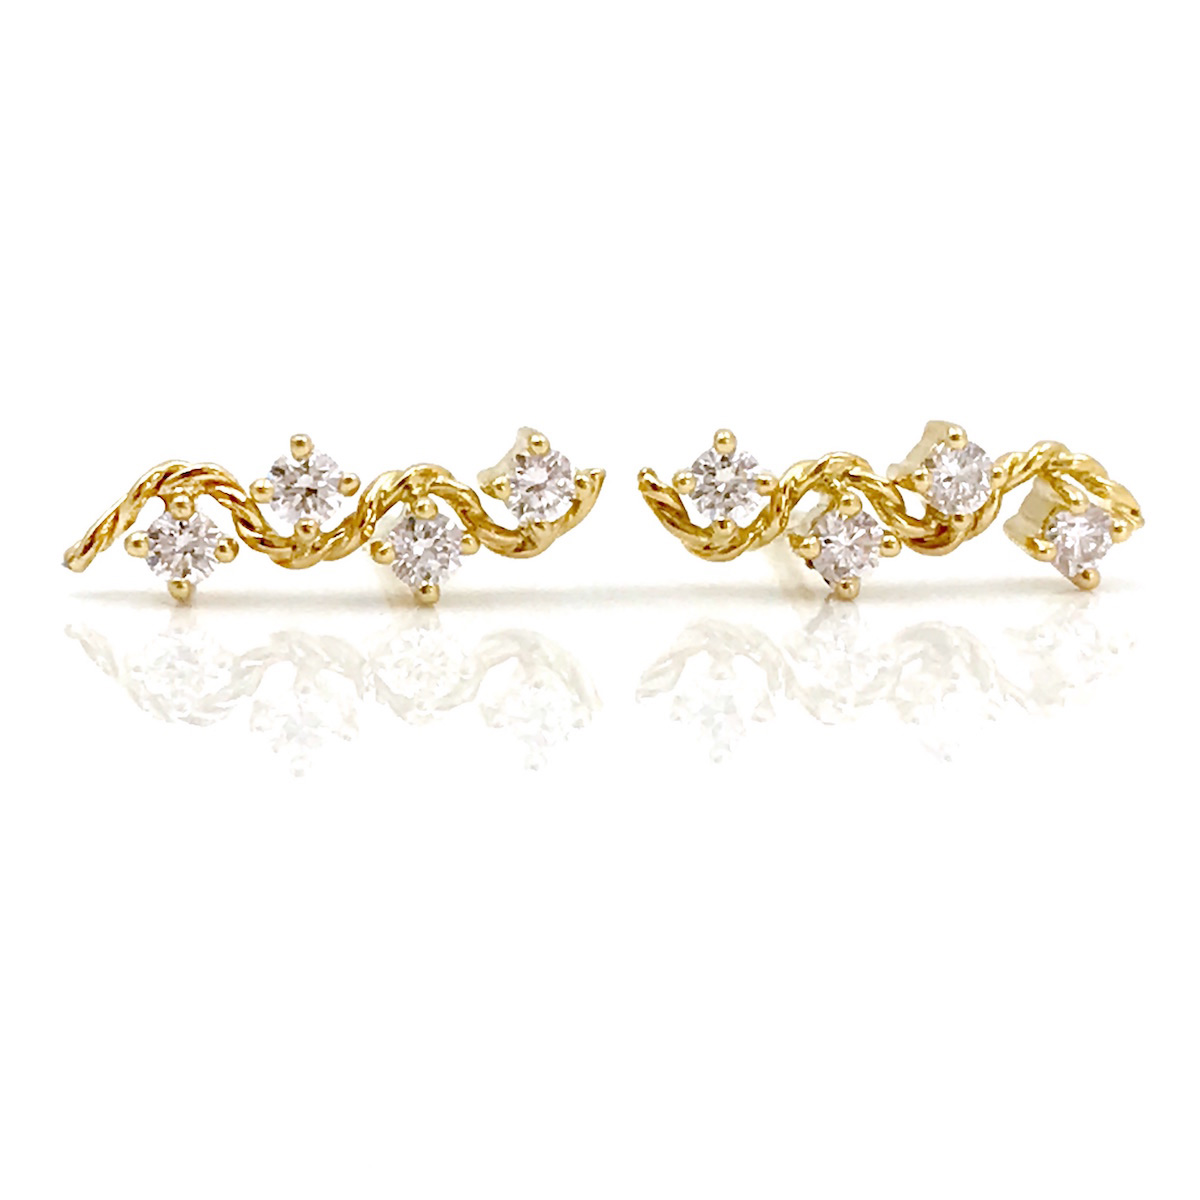 18k-diamond-twist-wave-Enlace-Post-Earrings-Jewelyrie-Tulle-Studs-Collection-copy